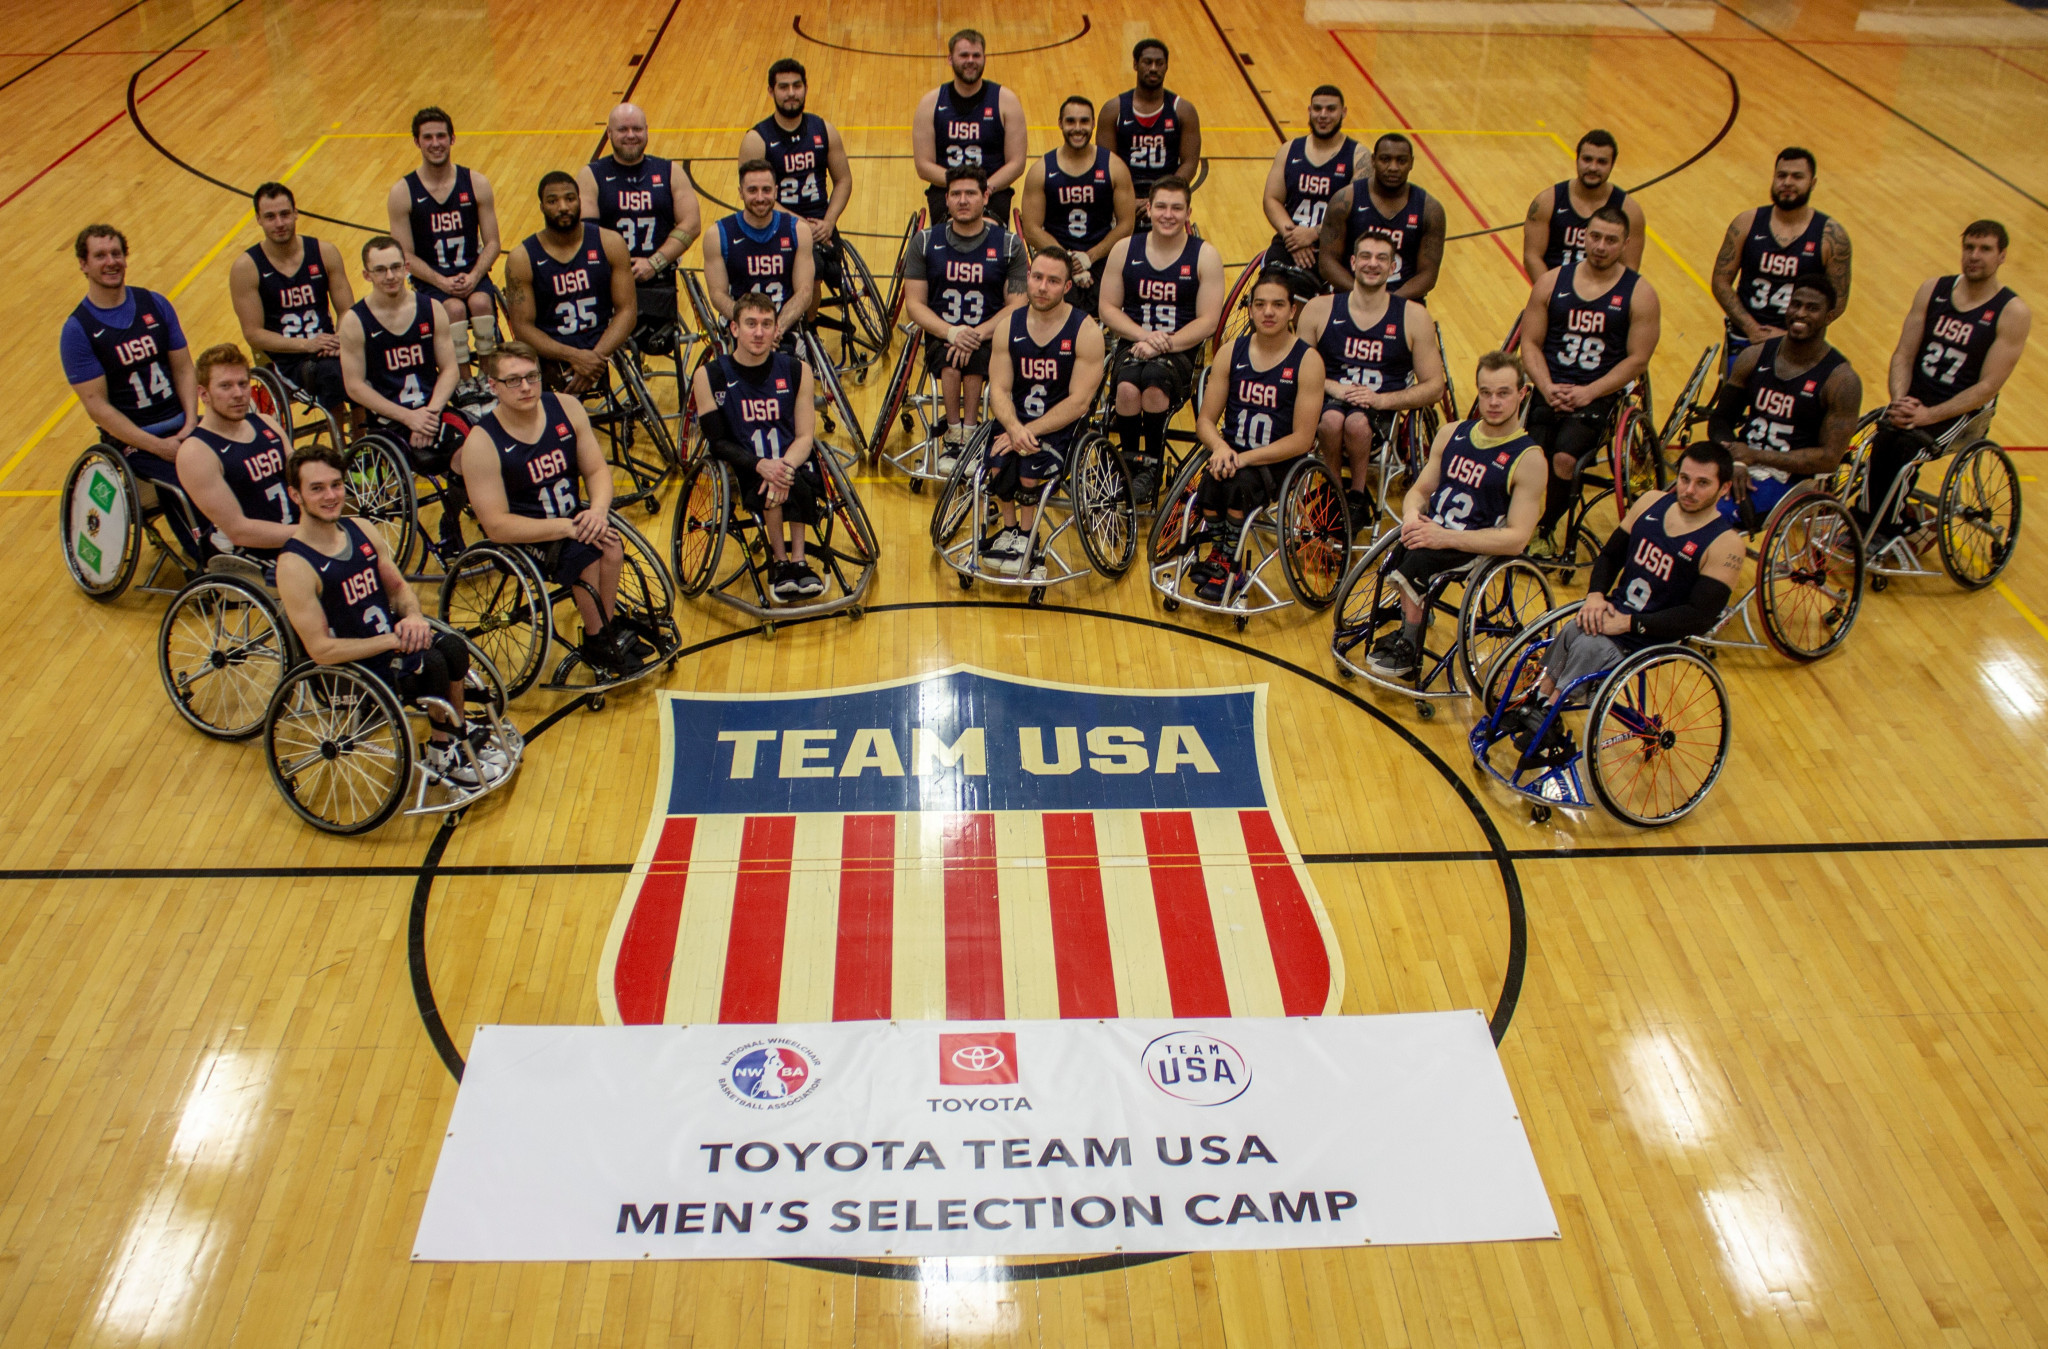 NWBA announce initial selection for 2019 team